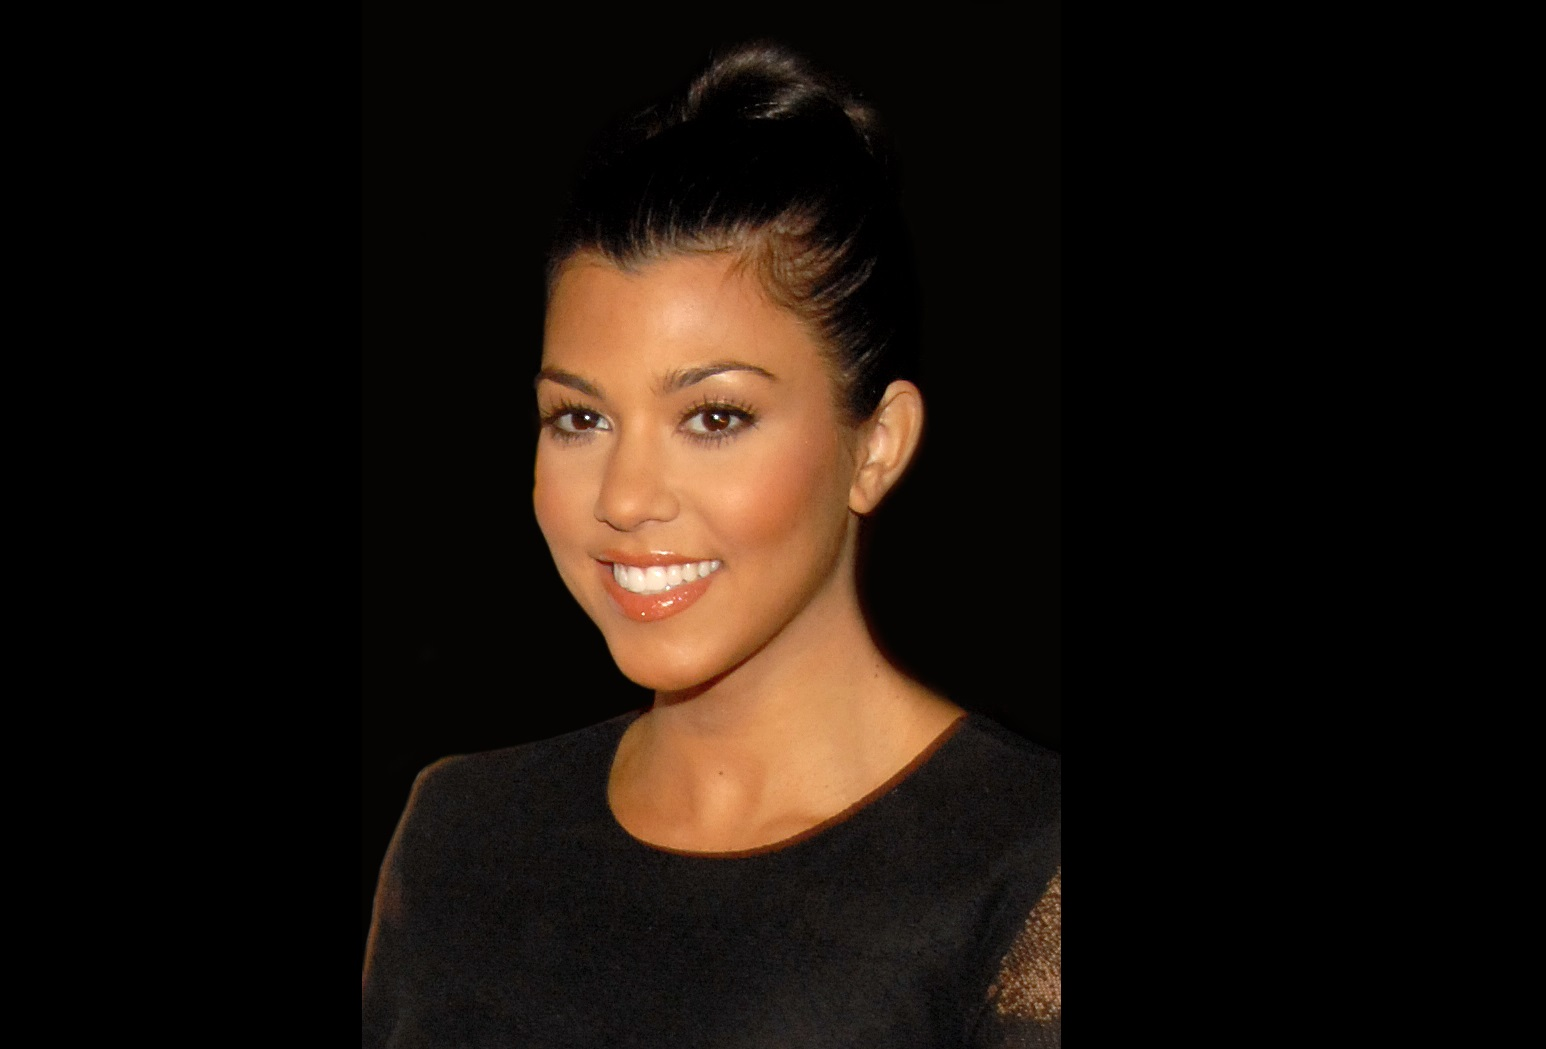 Kourtney Kardashian Shares Photo of LDS Temple and the Mormon Blogosphere Exploded.